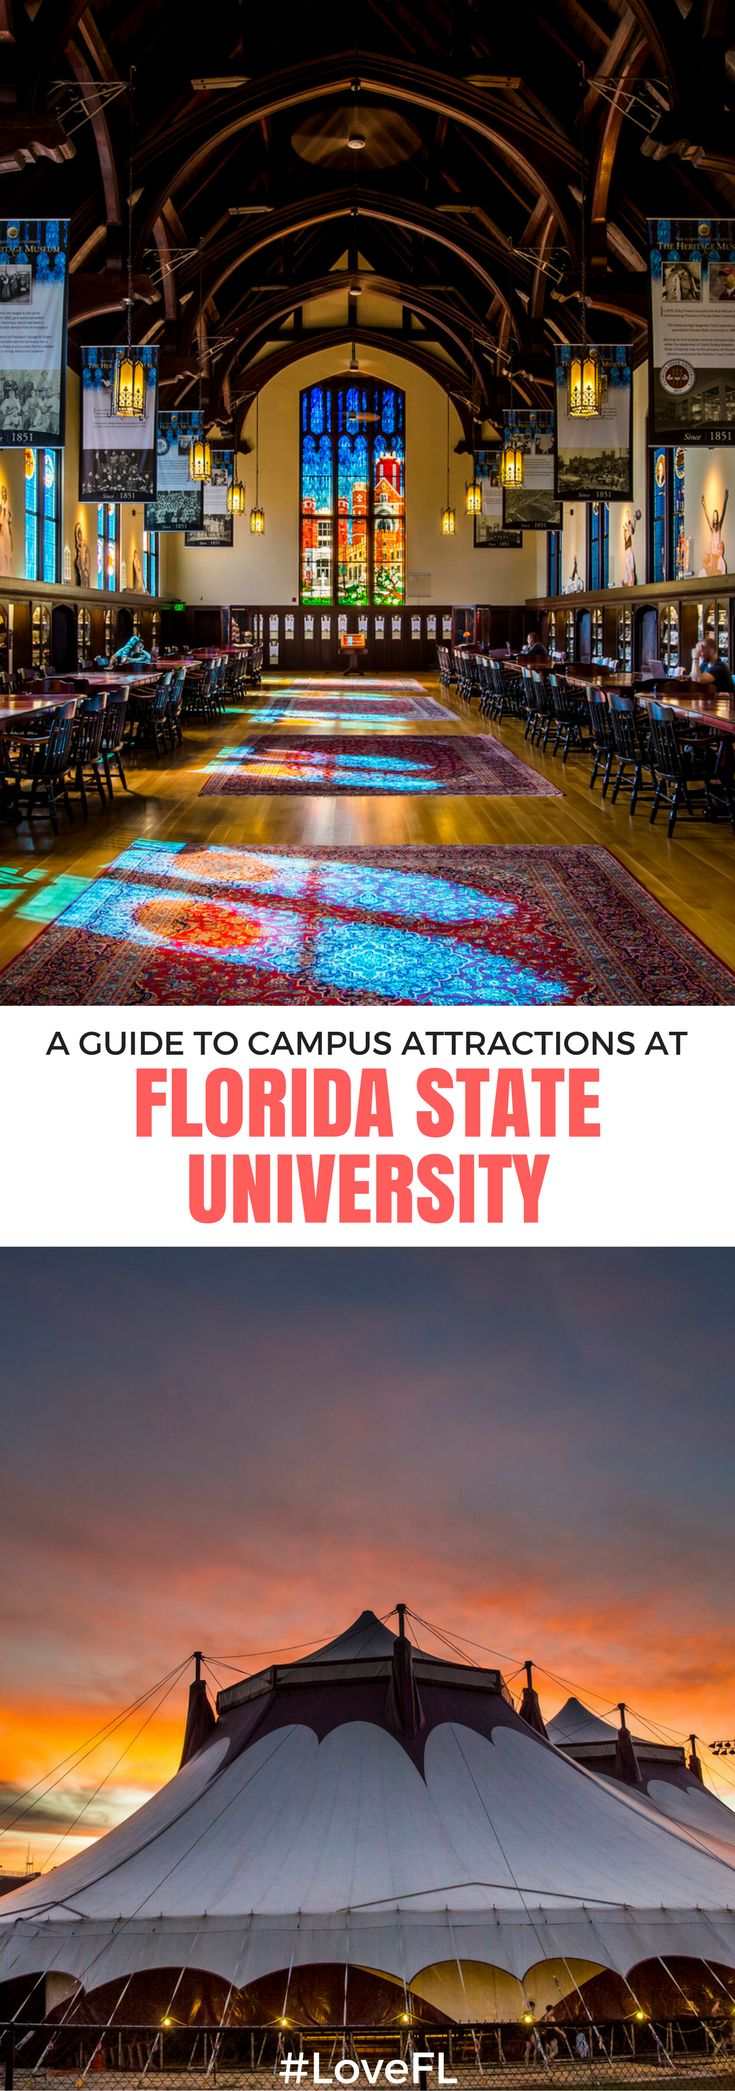 A guide to campus attractions at Florida State University | #Florida #College #FSU #Travel